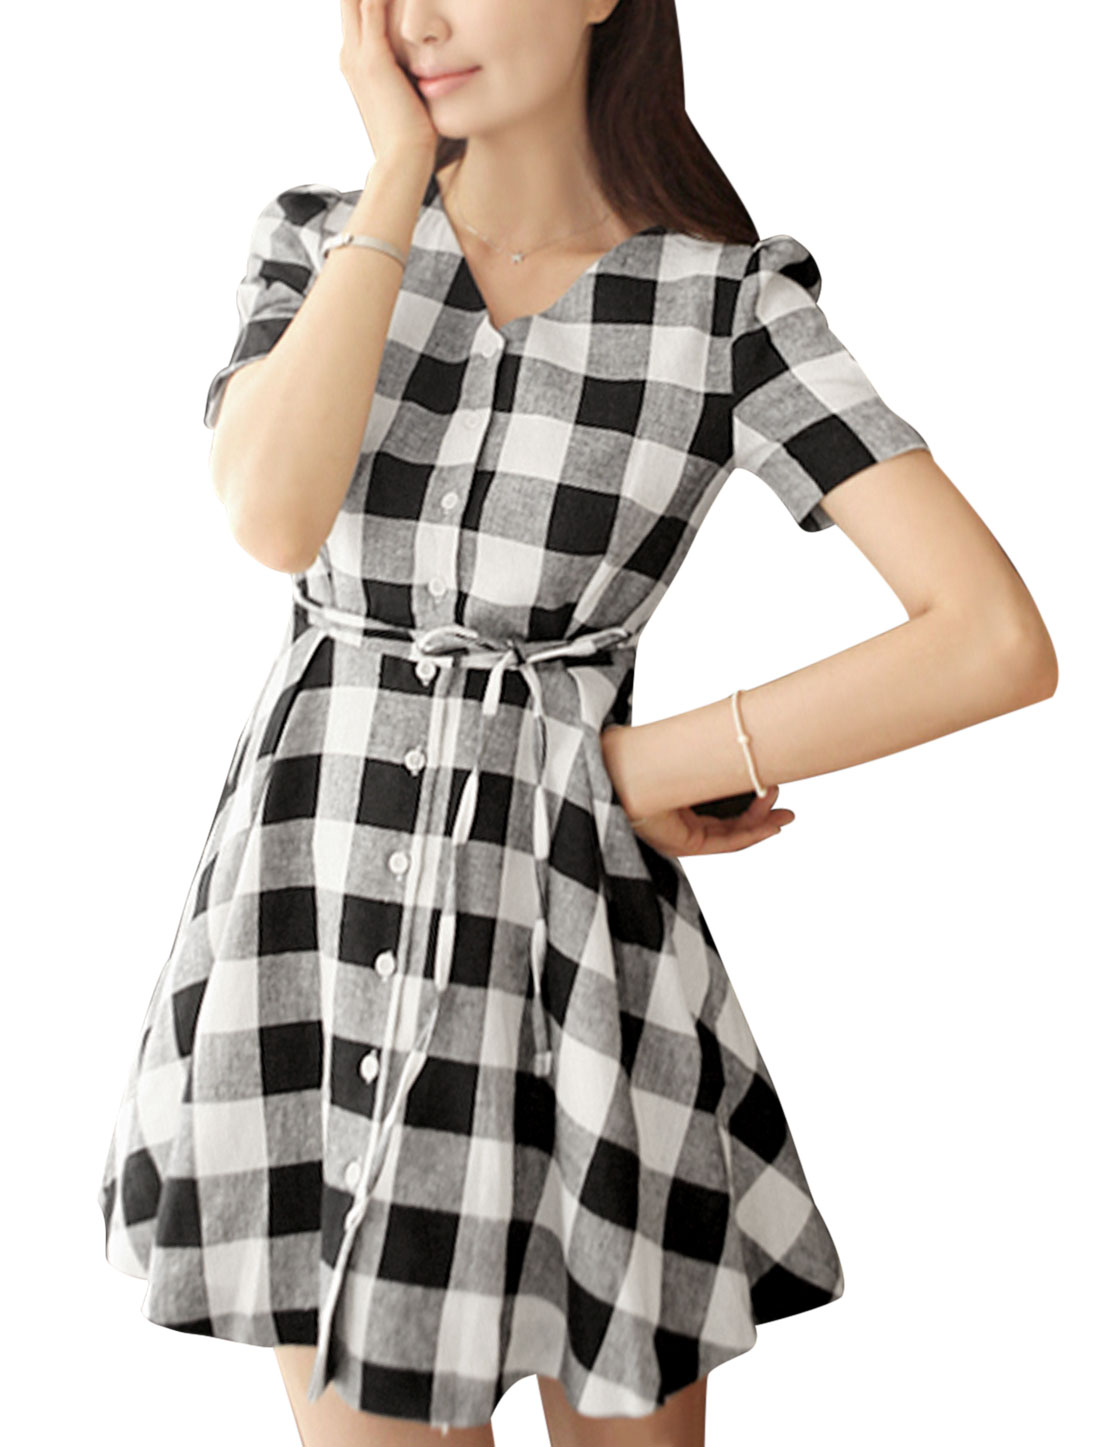 Lady Plaids Single Breasted Drawstring Waist Shirt Dress Black White M